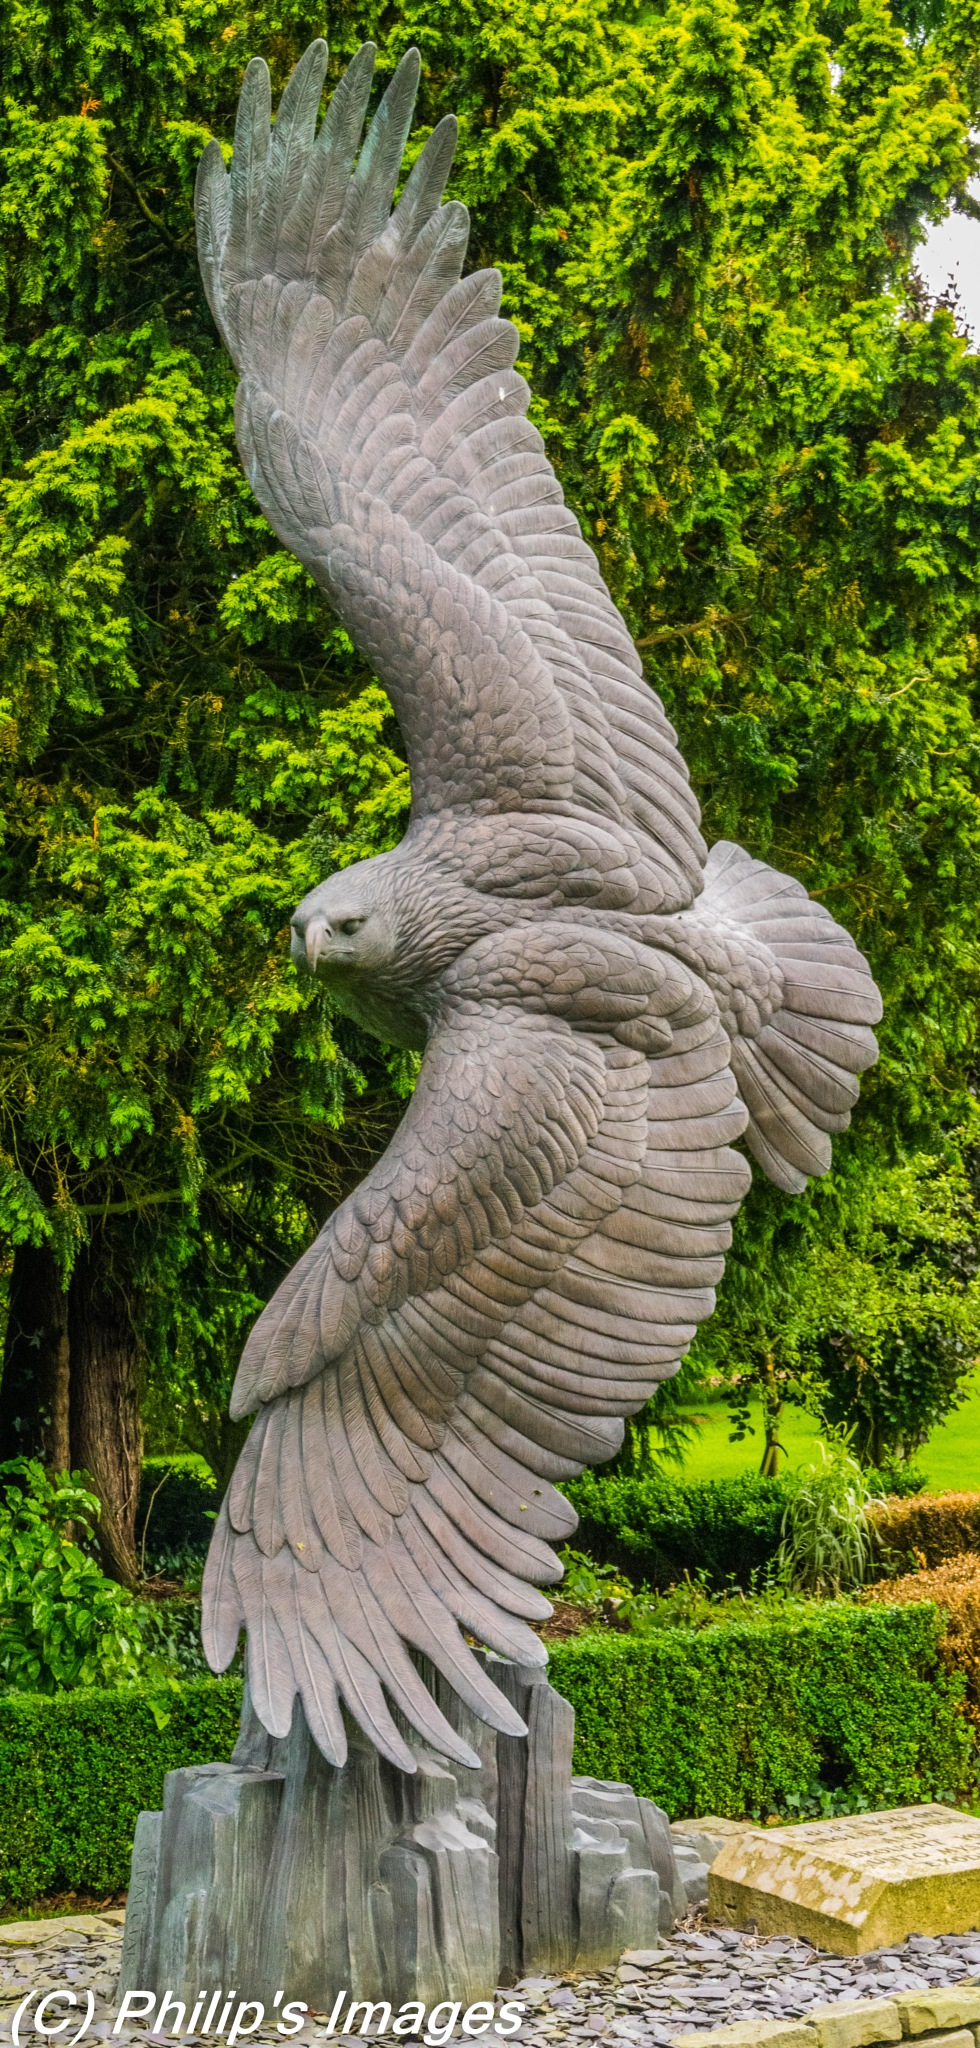 Eagle sculpture by philips images